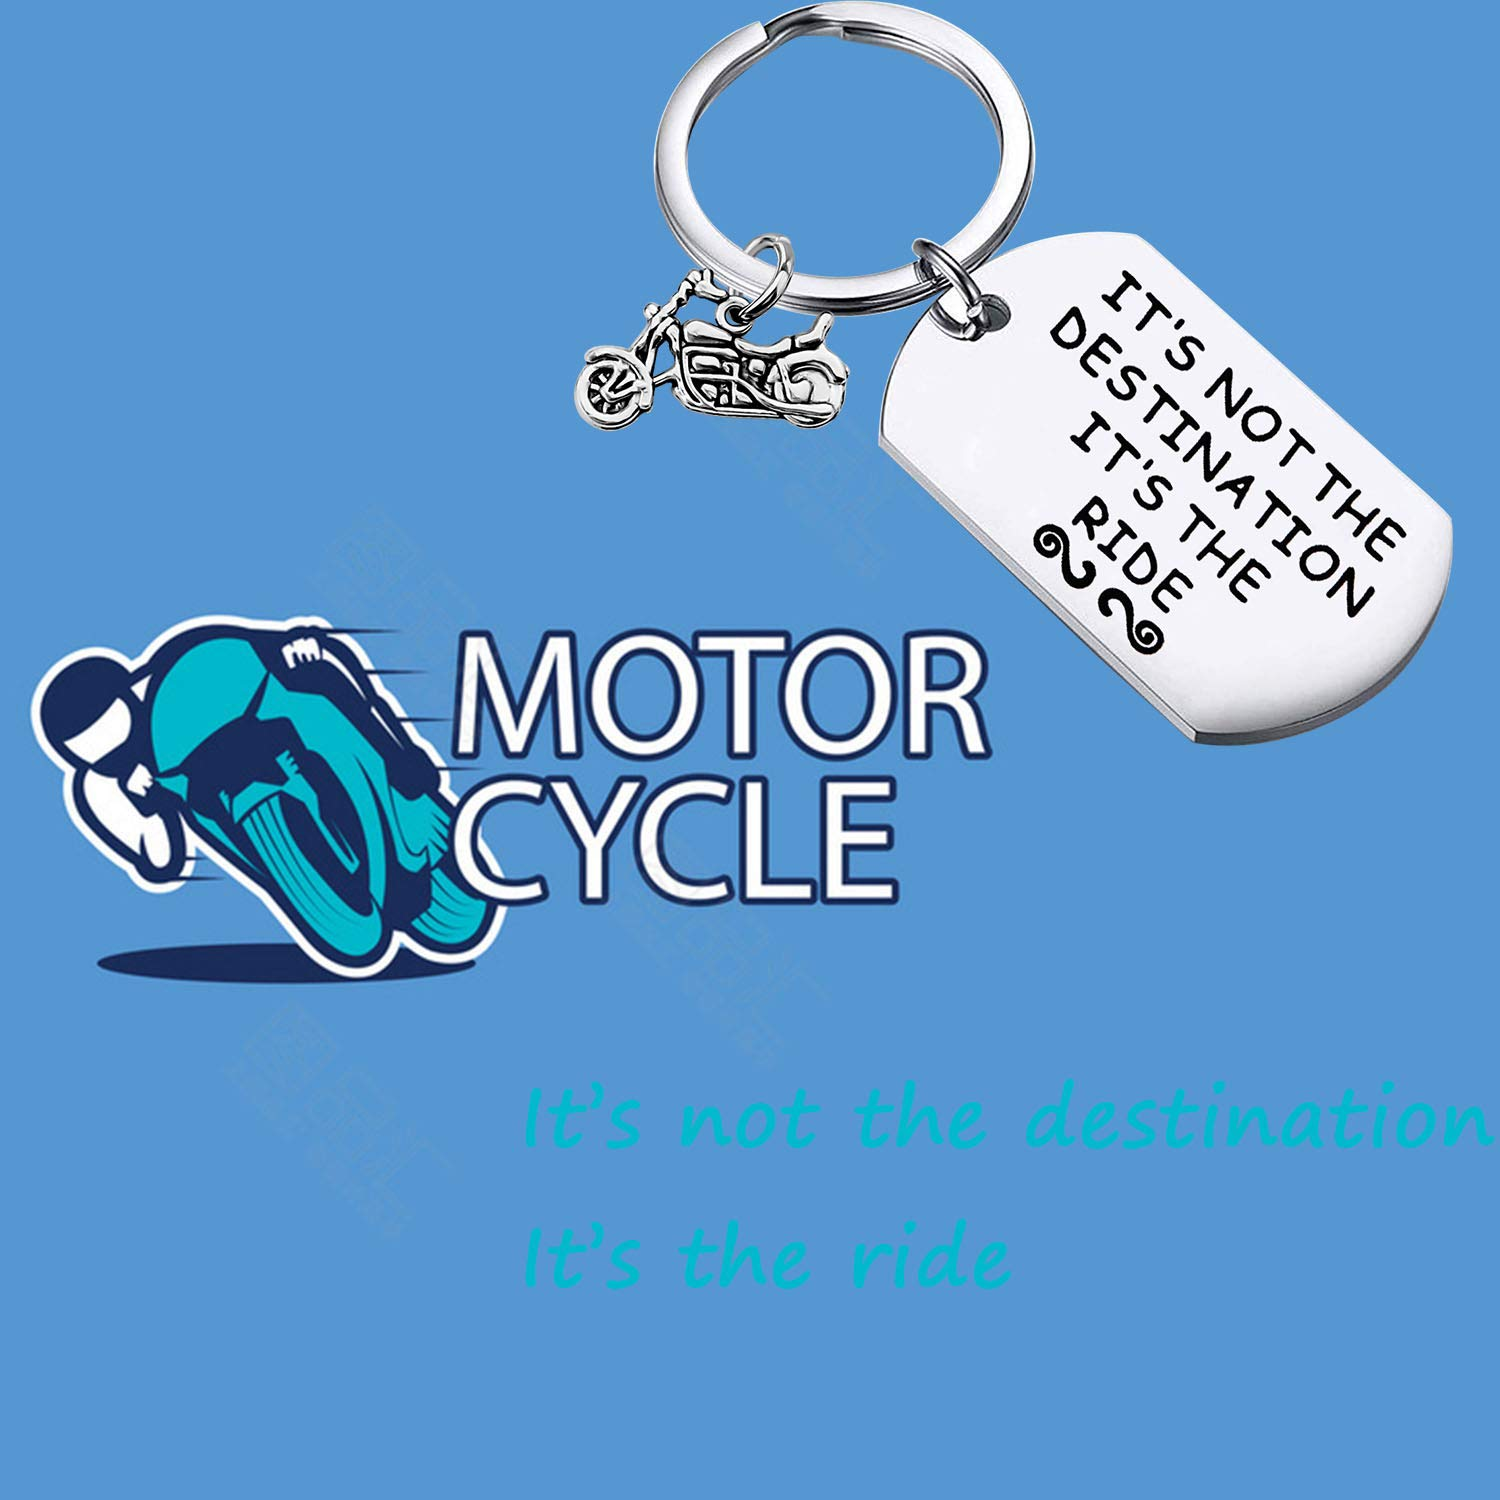 MAOFAED Biker Gift Motocycle Keychain Motorcycle Birthday Gift Stocking Stuffer Biker Chick Gift